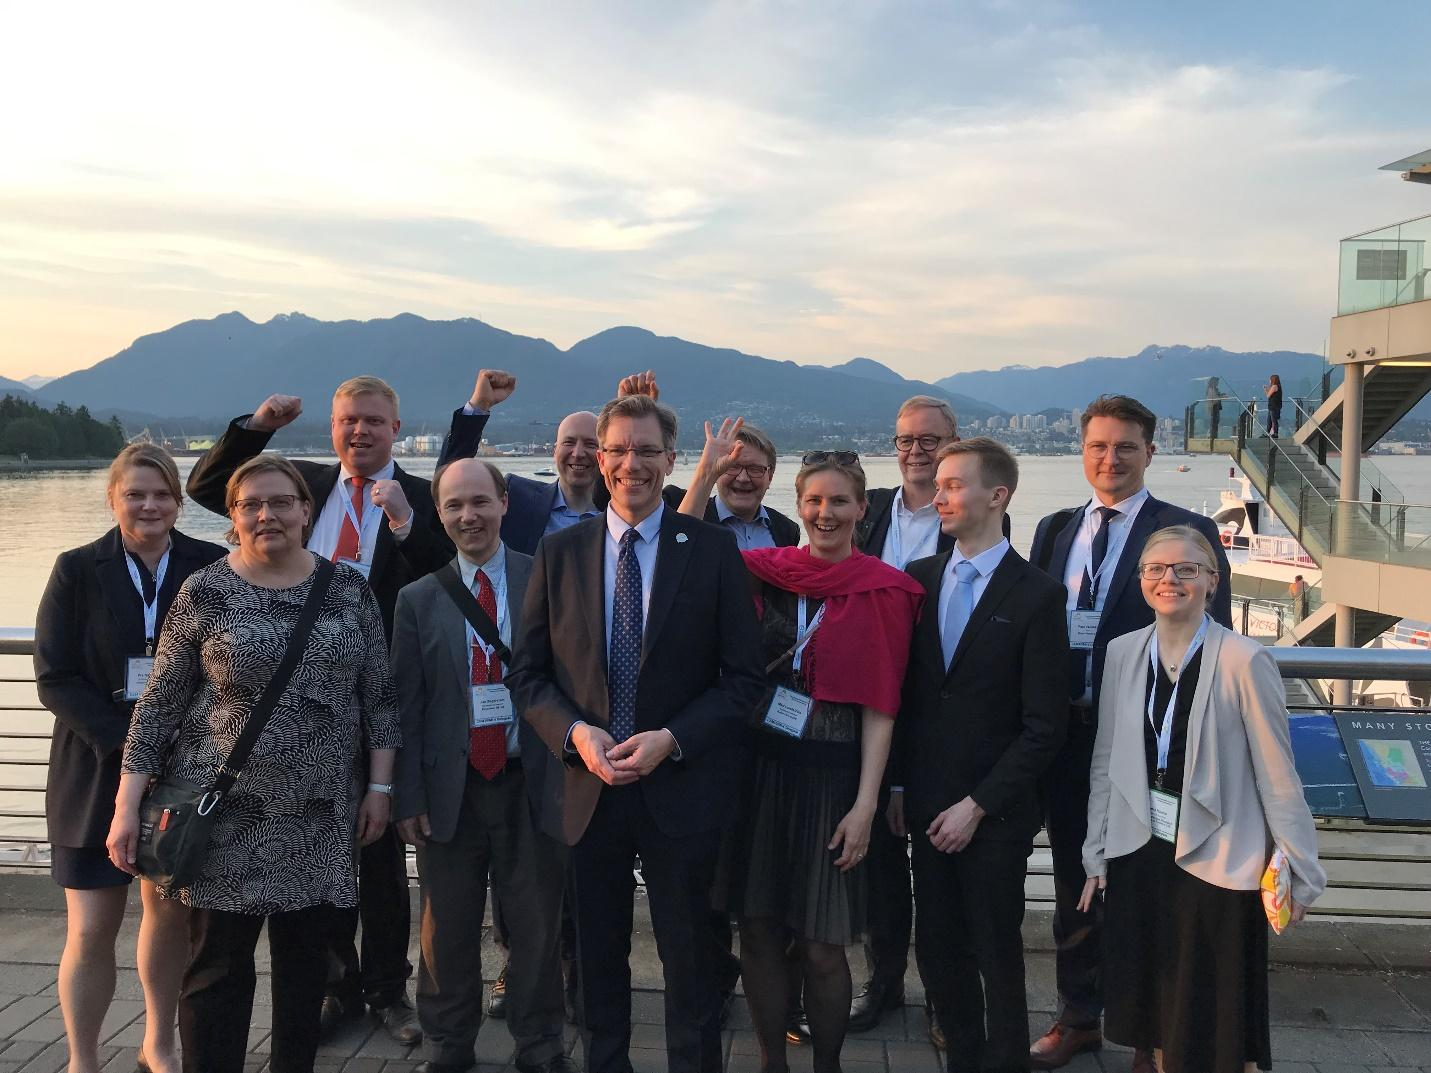 BATCircle greetings brought into the tenth Clean Energy Ministerial (CEM10) and fourth Mission Innovation (MI-4) Ministerial on May 27th-29th, 2019, Vancouver